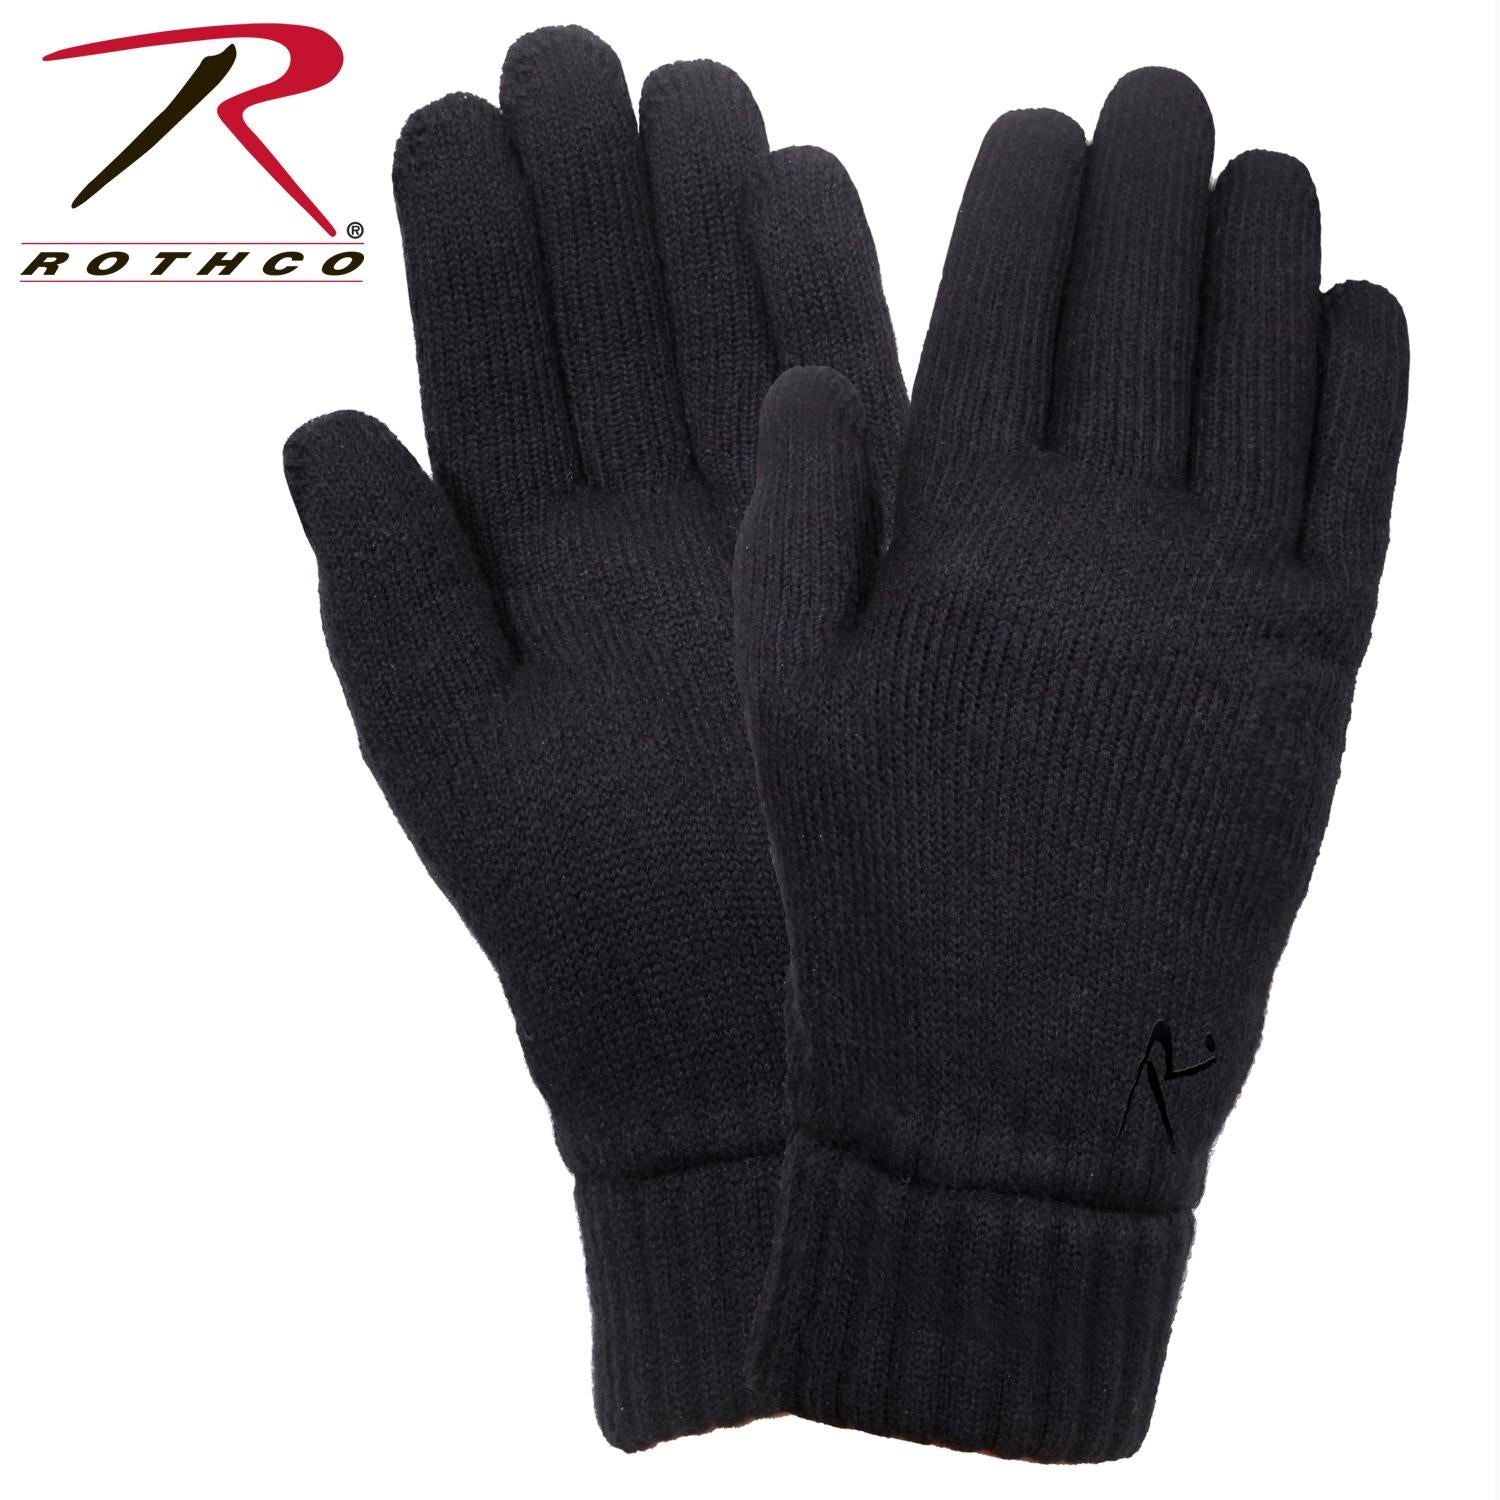 Rothco Fleece Lined Gloves - Black / L